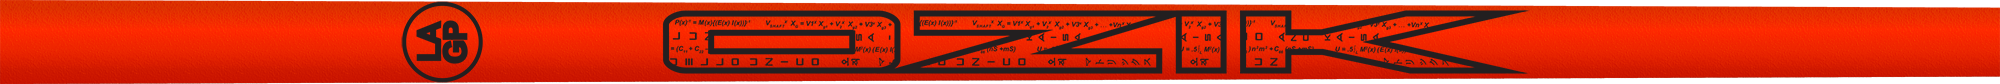 Ozik Red Tie: Ferrari Red Black Textured - Wood 50 S